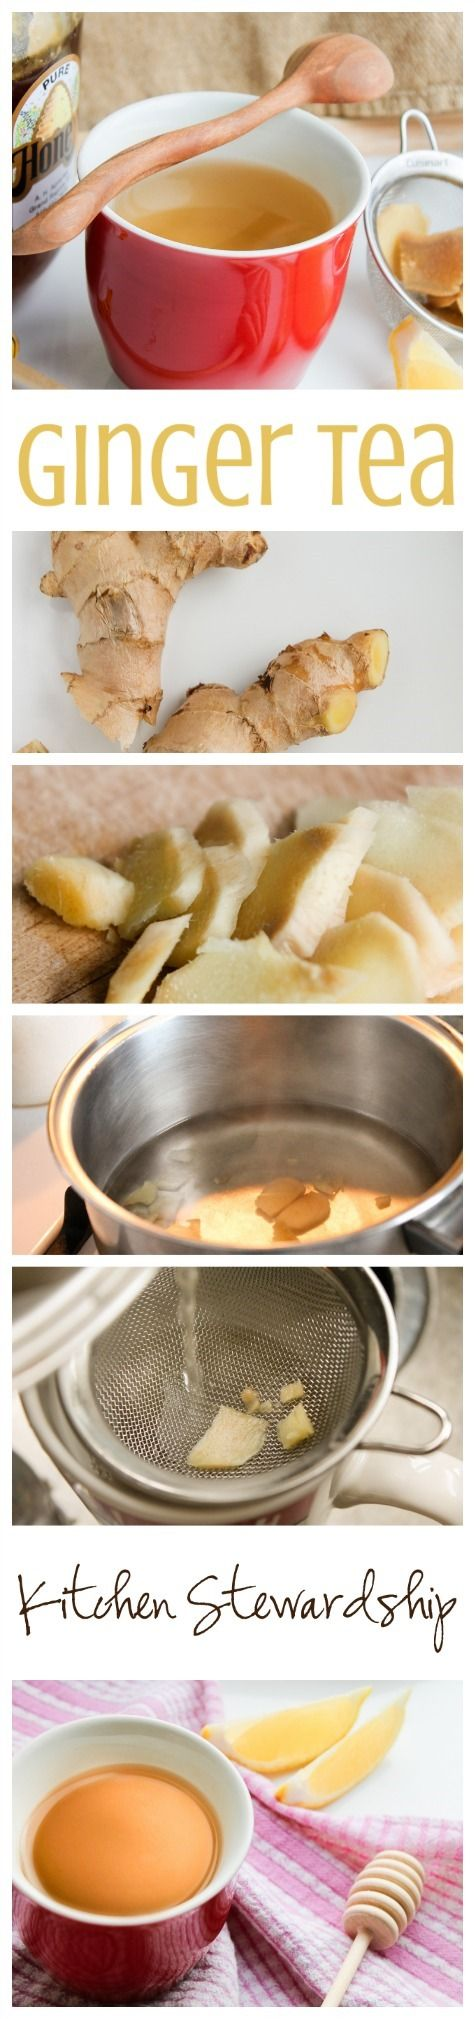 How to Make Ginger Tea - so simple, and a nice spicy kick + cold fighting properties :: via Kitchen Stewardship